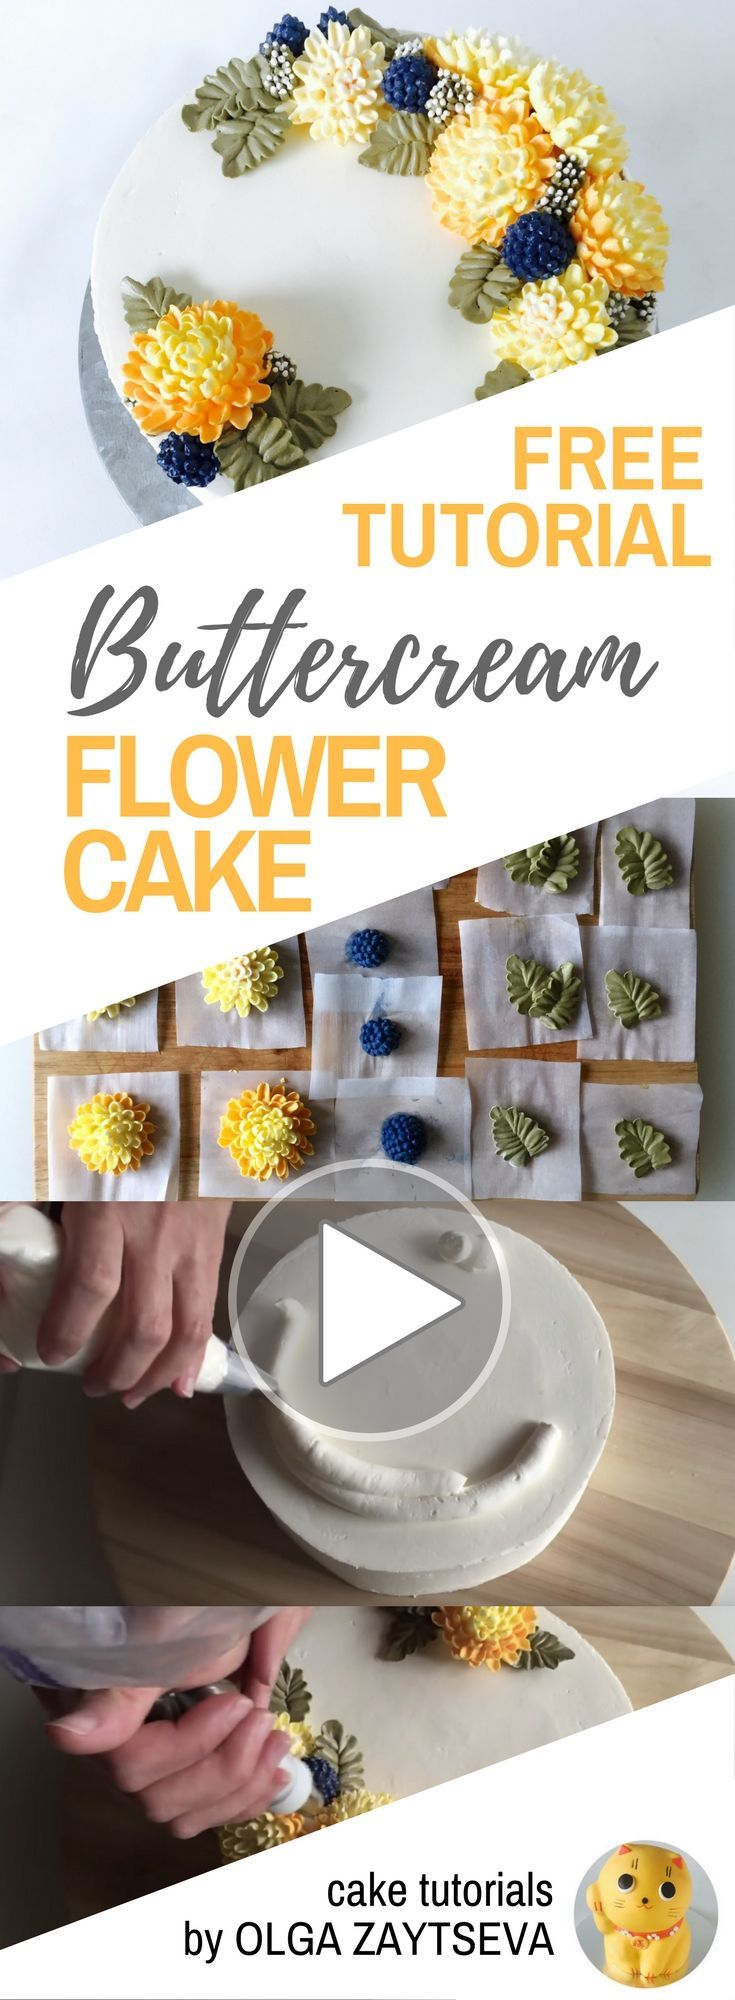 HOT CAKE TRENDS How to make Buttercream chrysanthemums and berries cake - Cake decorating tutorial by Olga Zaytseva. Learn how to make very trendy buttercream chrysanthemums, pipe berries and create this autumnal flower wreath cake. #cakedecoratingtutorials